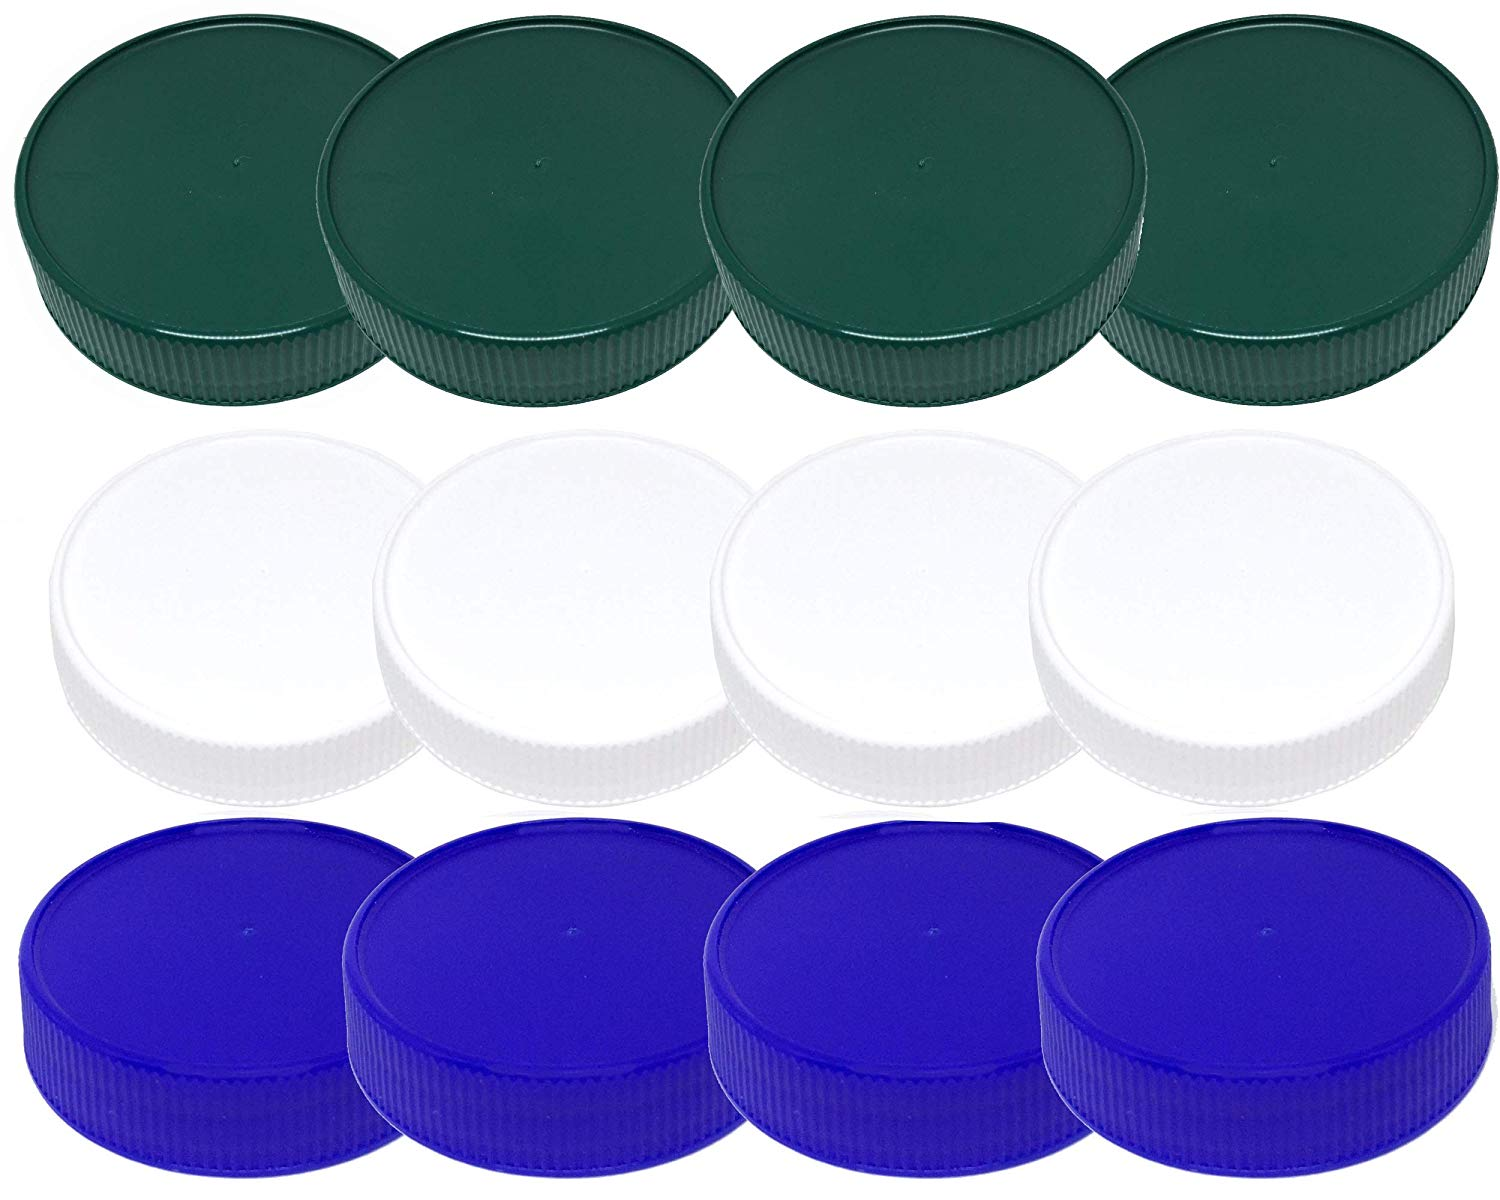 Mason Jar Storage Lids-Plastic (BPA Free) Regular Mouth Mason Jar Lids Set of 12 Reusable Leak Proof Caps are Made in the USA (white green blue)